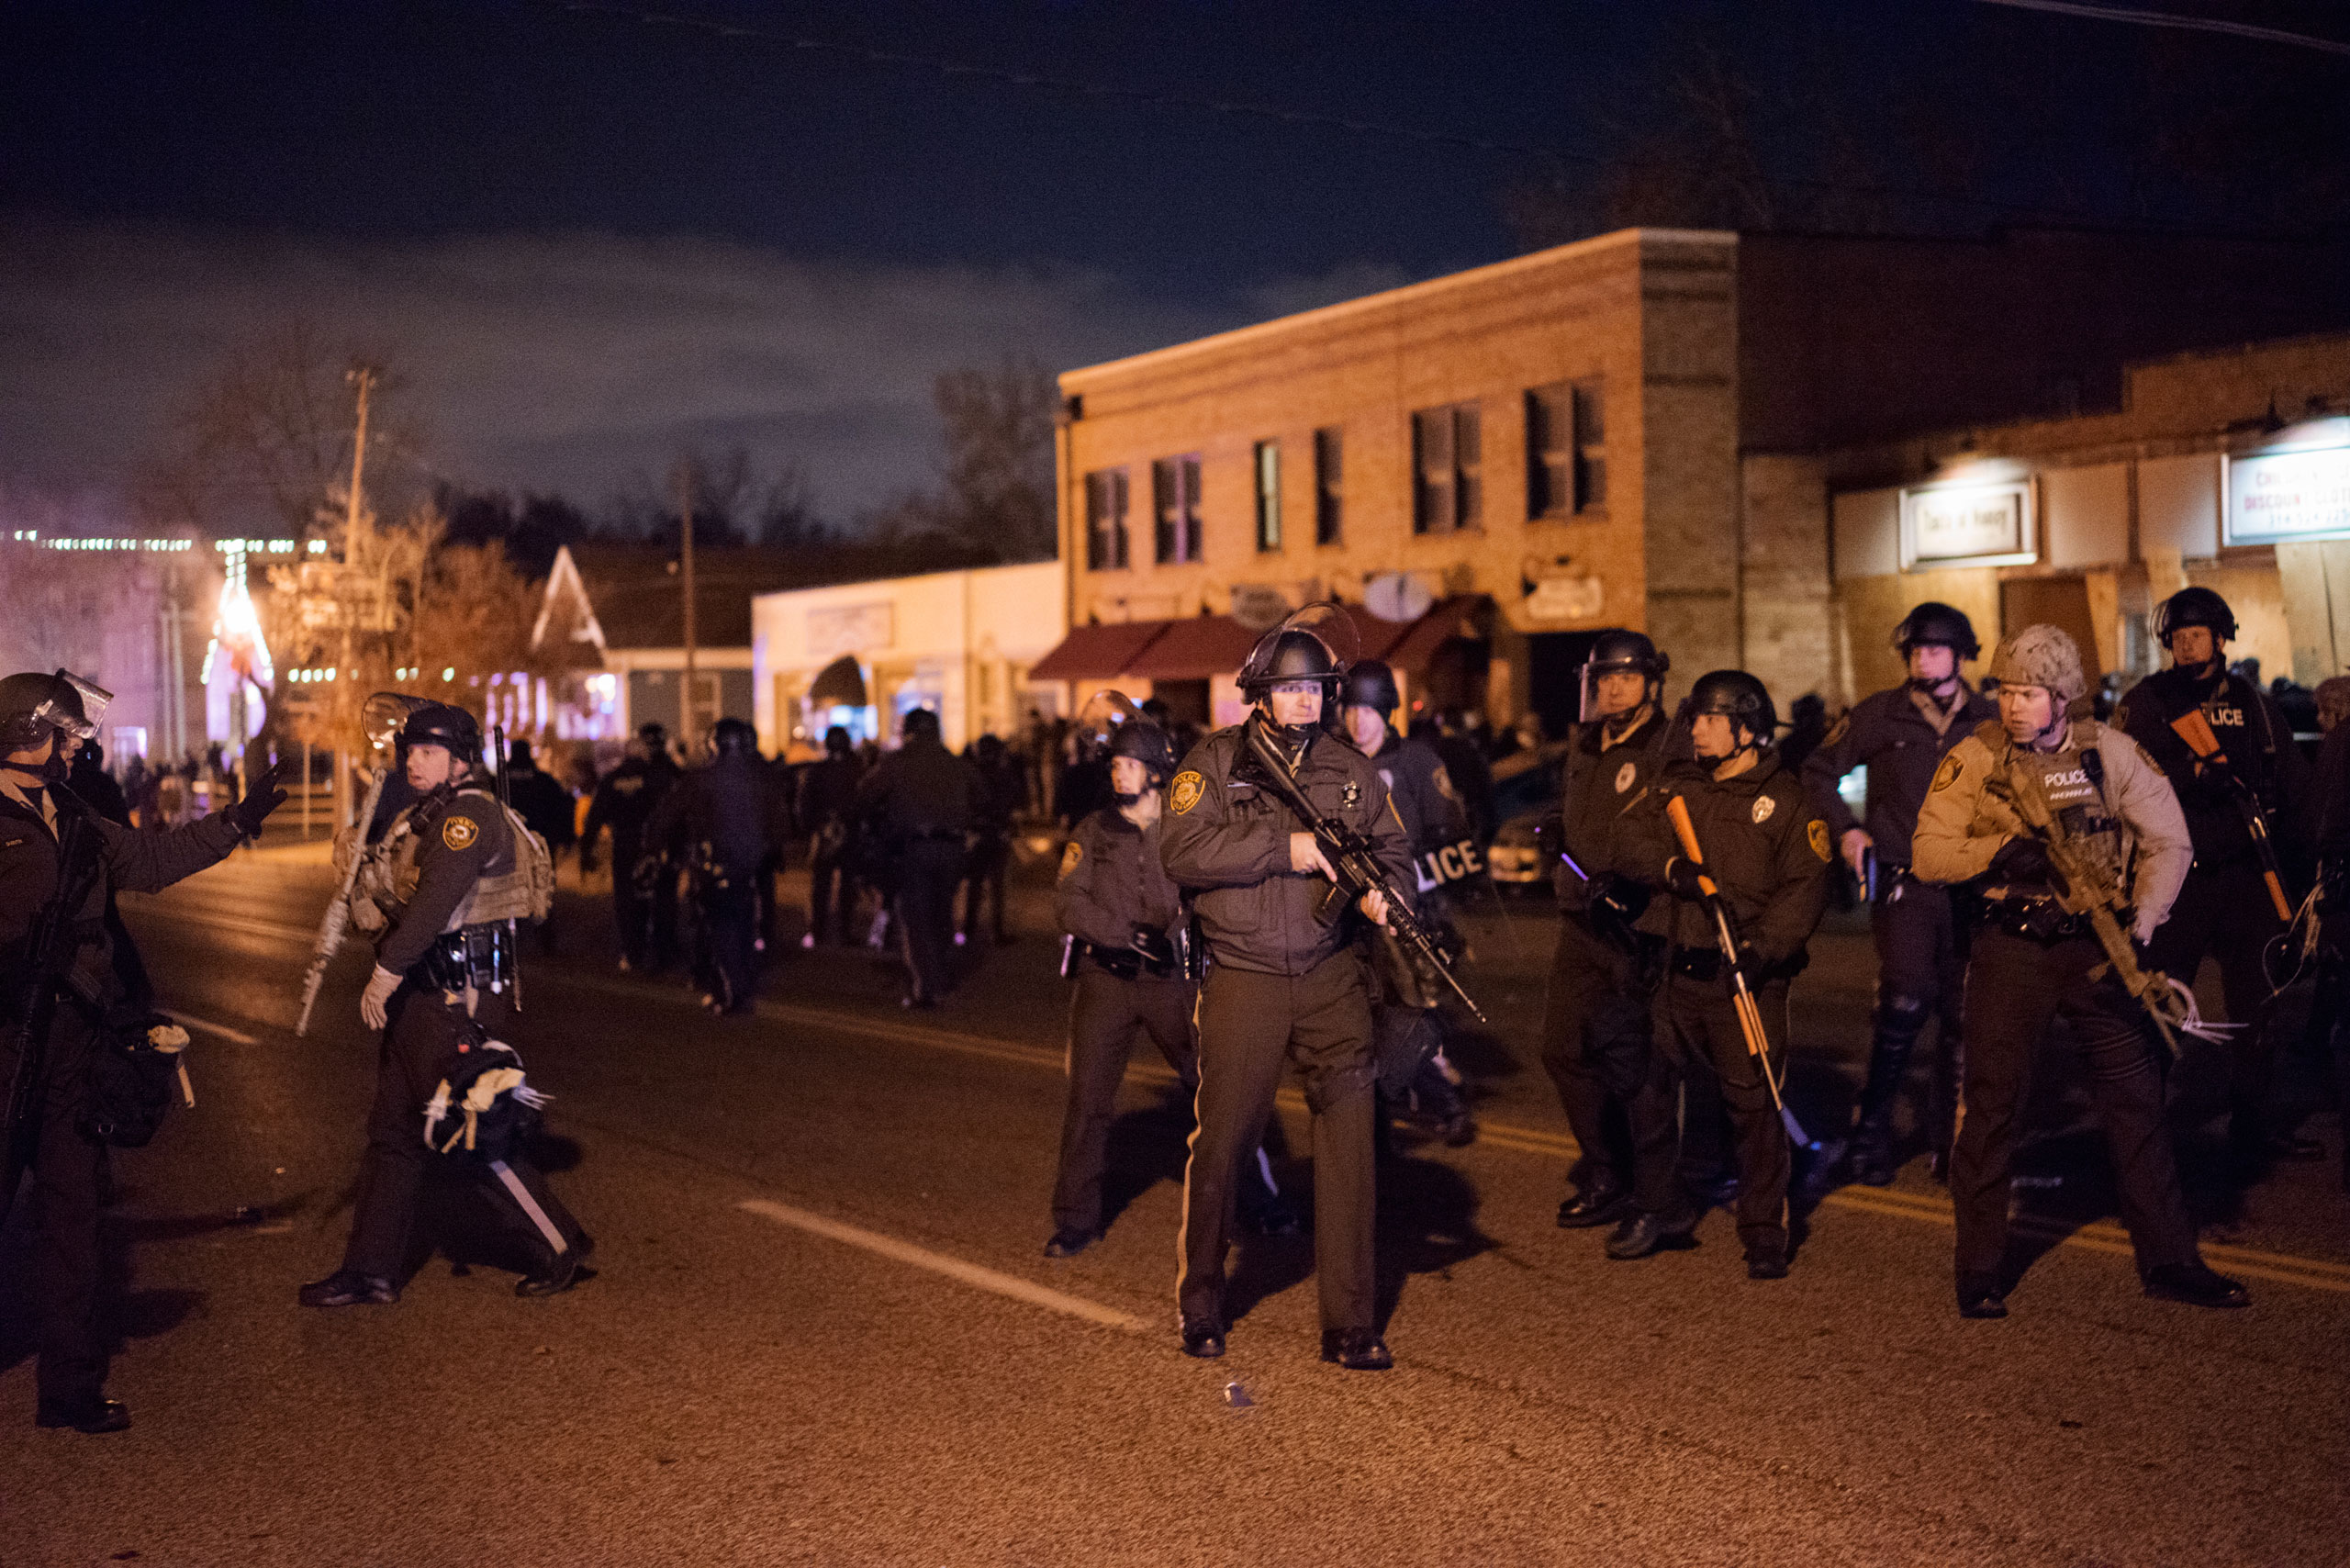 Law enforcement responds to protestors in Ferguson, Mo. on Nov. 24, 2014